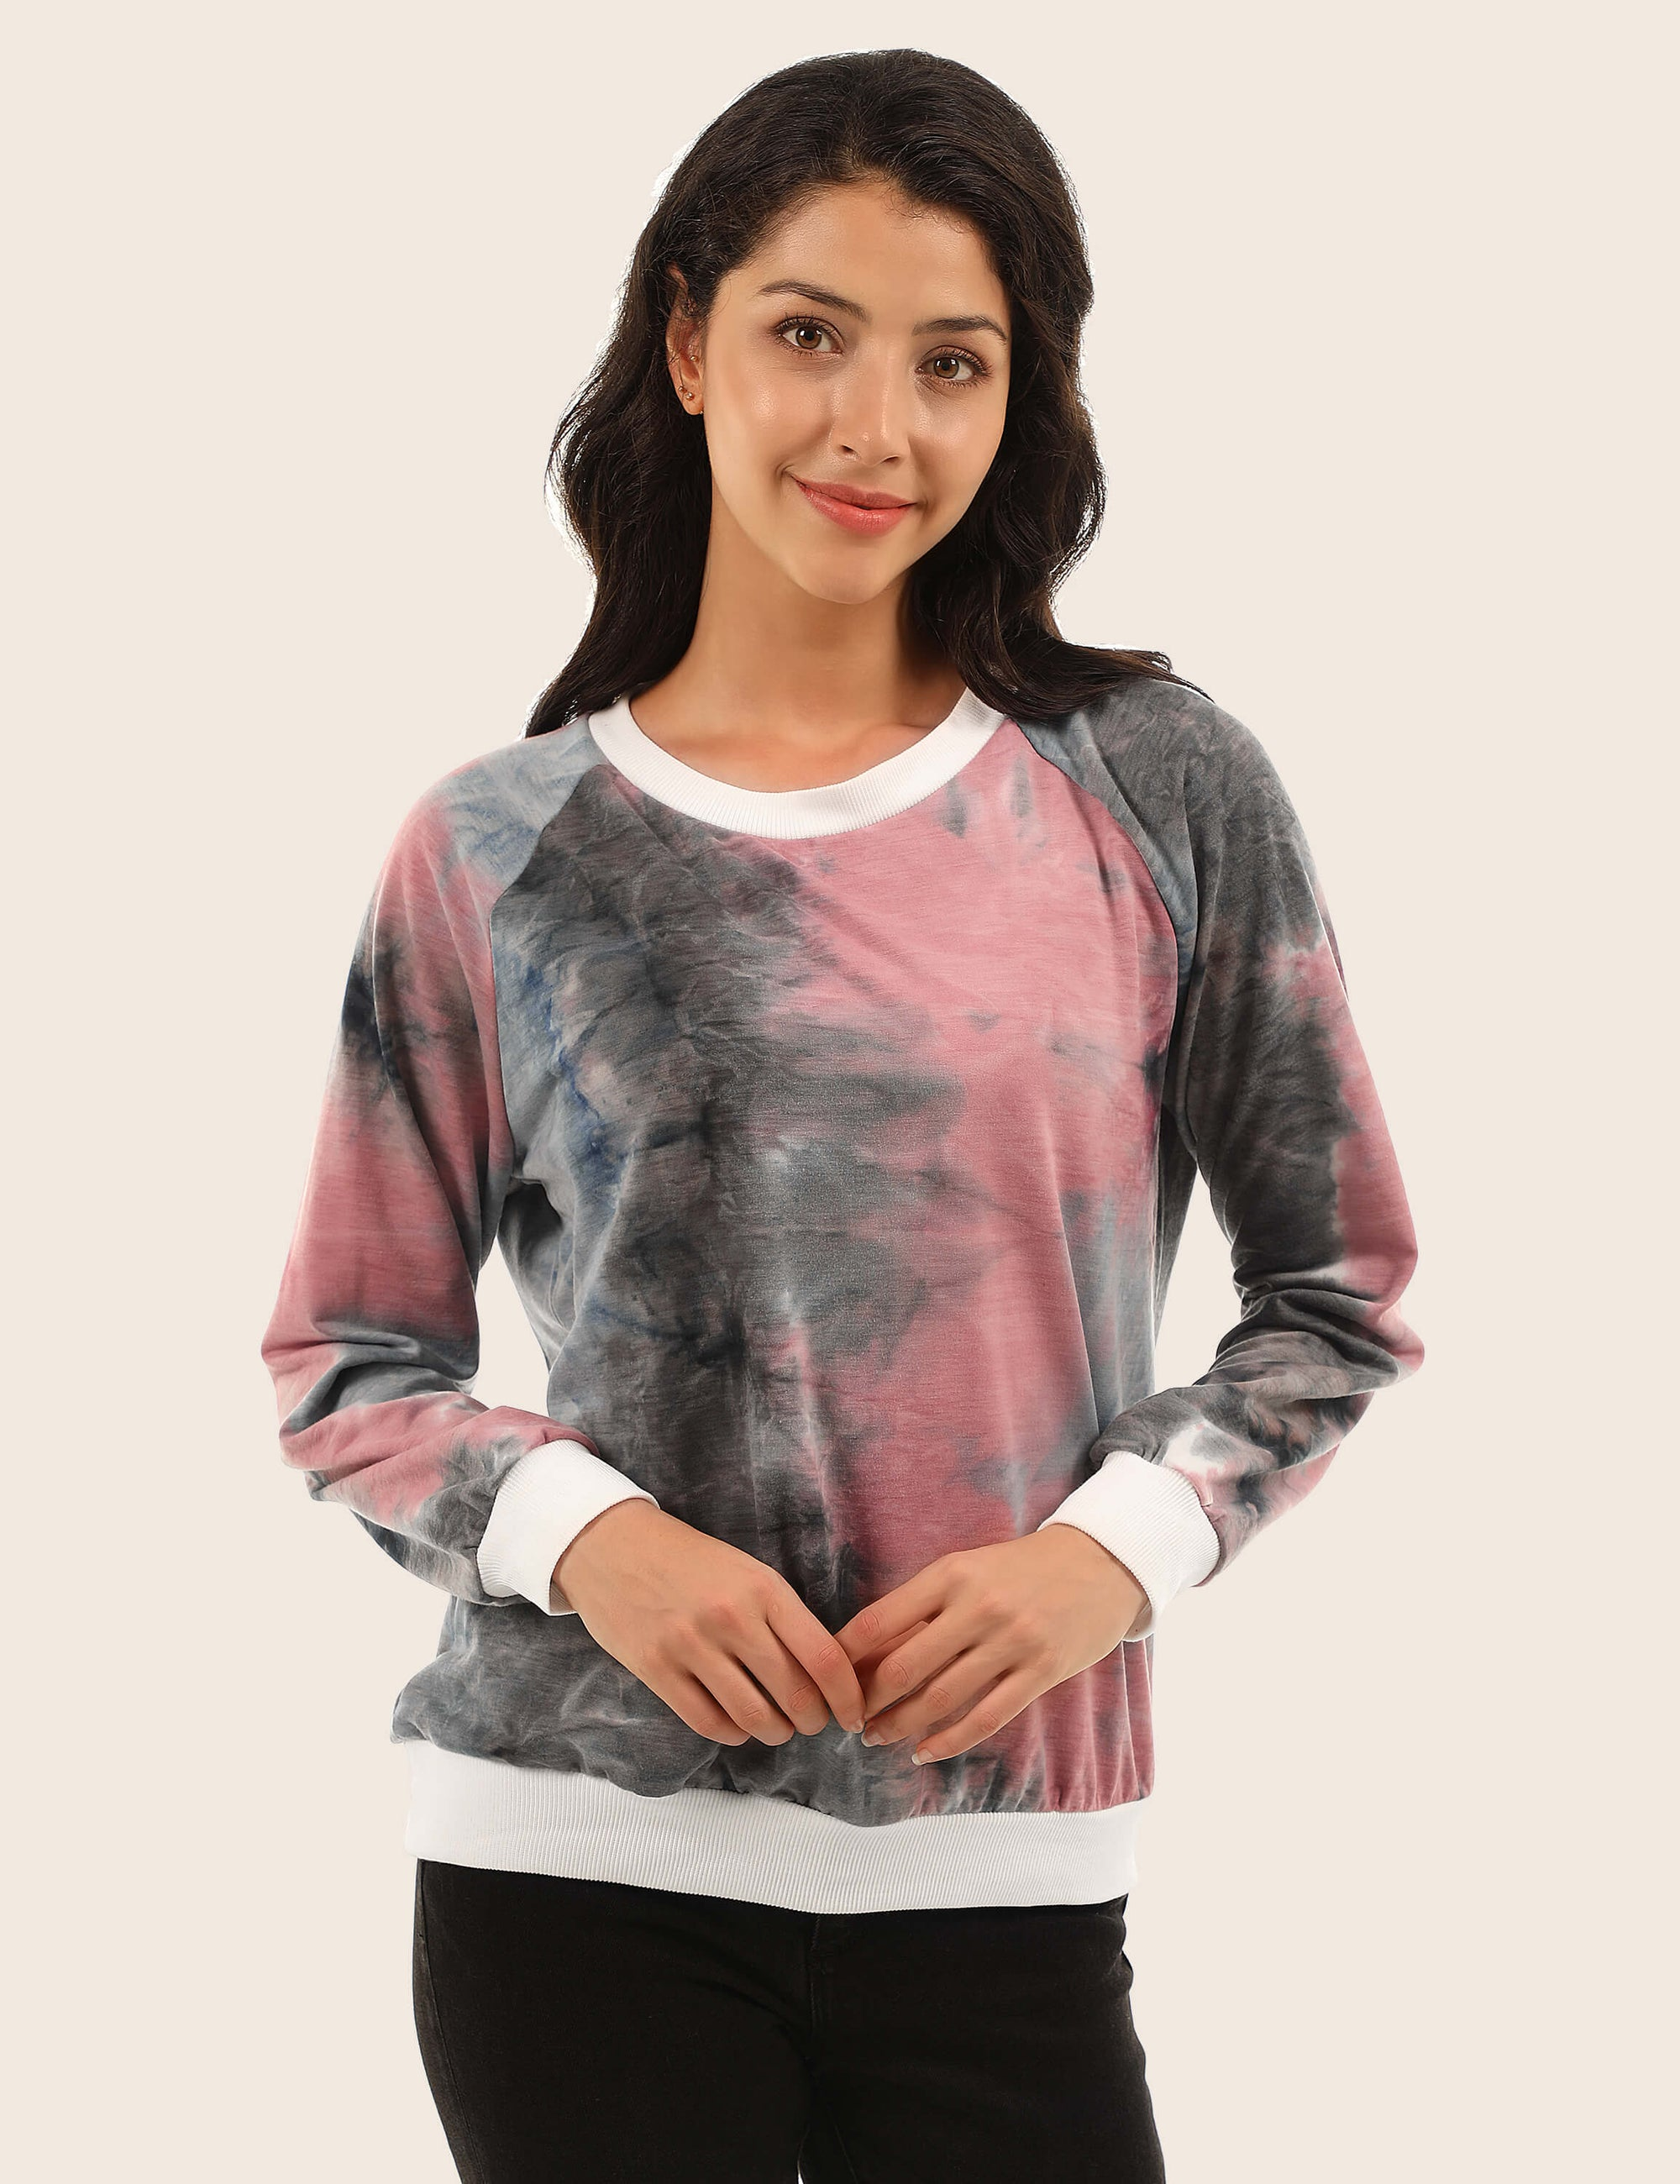 Blooming Jelly_Show Off Your Personality Tie Dye Sweatshirt_Tie Dye_304030_51_Stylish Women Autumn&Winter Outdoor Wear_Tops_Sweatshirt